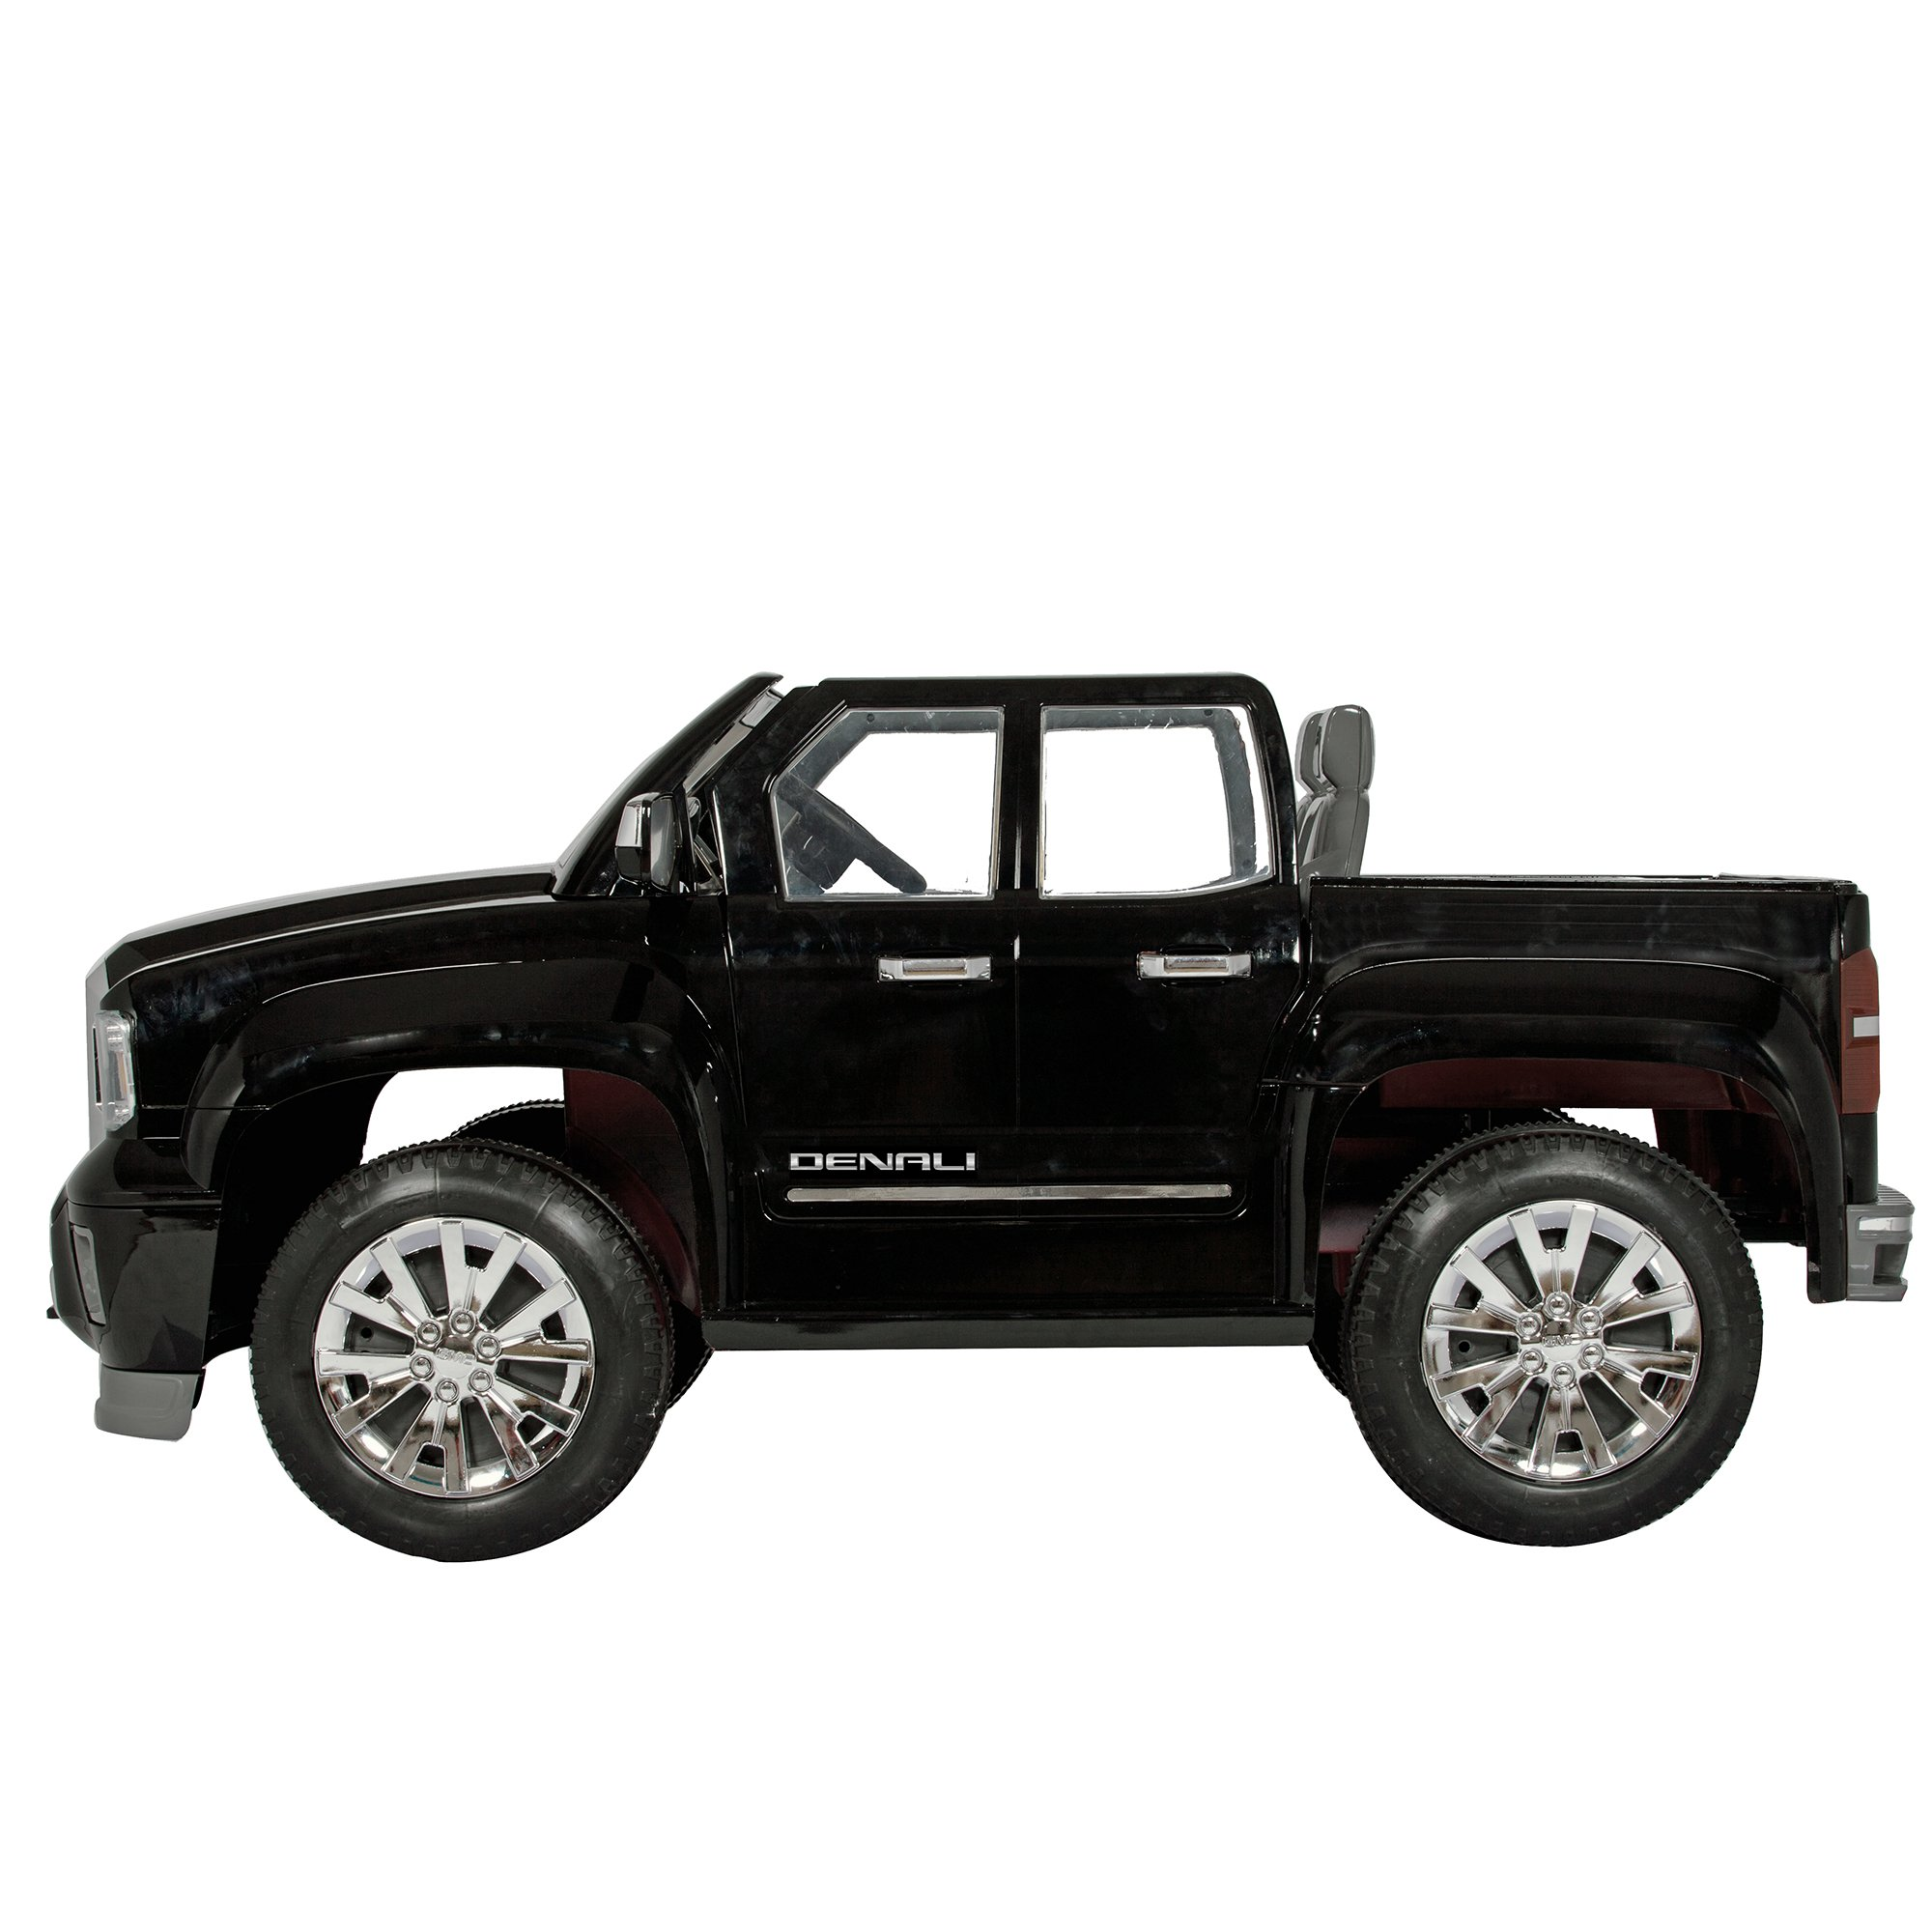 Rollplay GMC Sierra Denali 12-Volt Battery-Powered Ride-On, Black by Rollplay (Image #2)